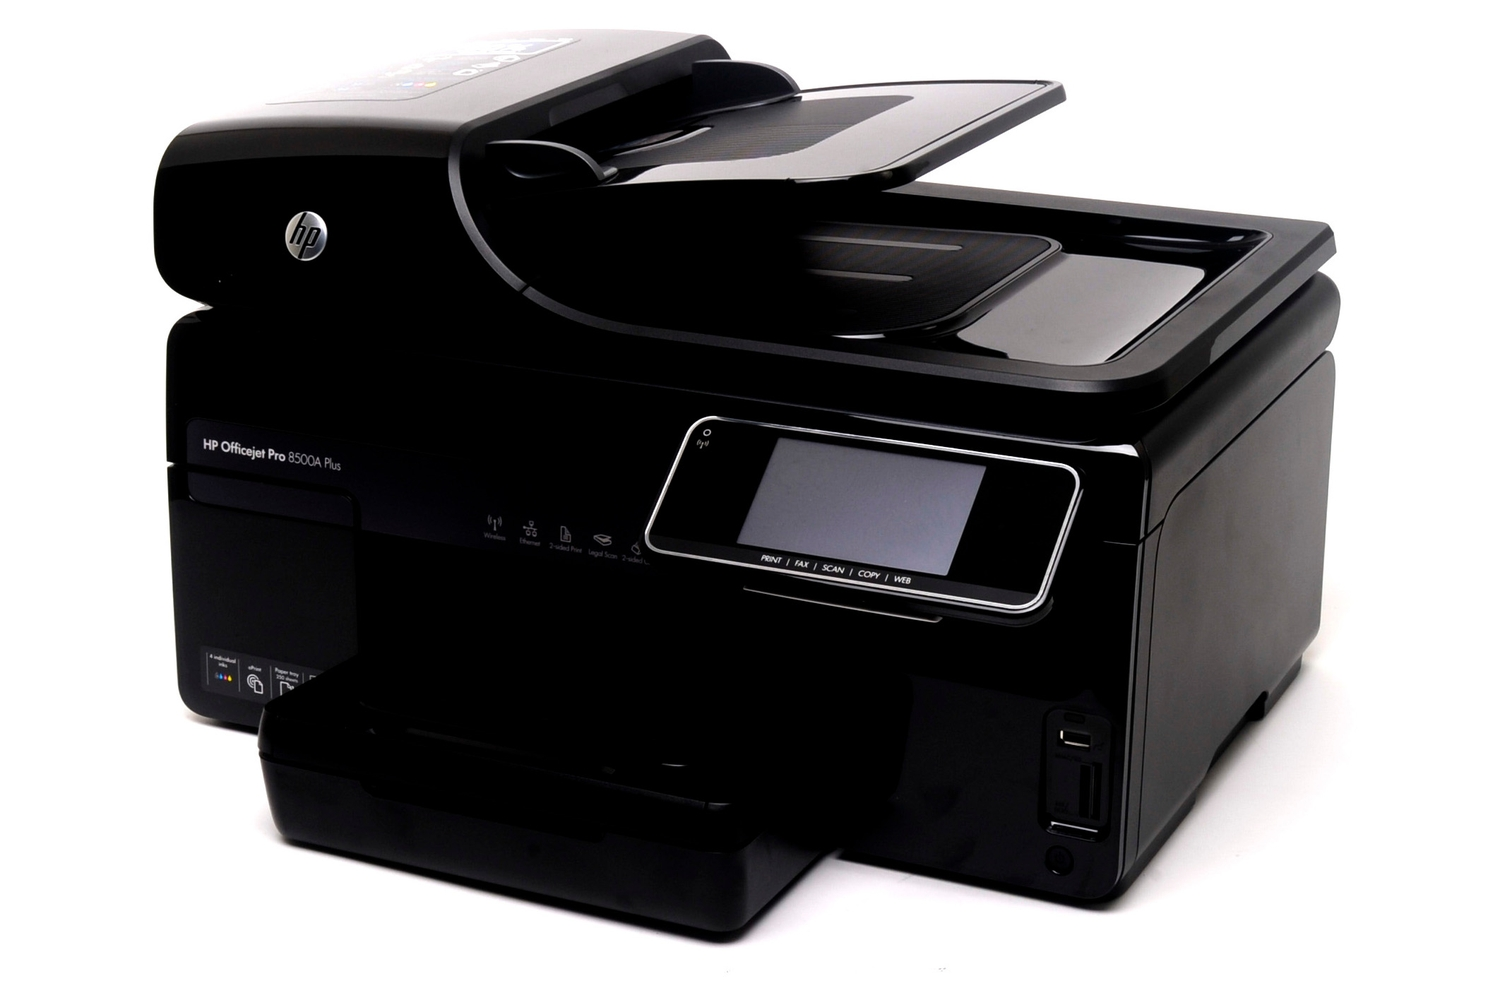 HP Officejet Pro 8500A Plus Review: HP Officejet Pro 8500A Plus review:  This inkjet printer from HP produces A4 documents and photos quickly -  Brand Centre ...